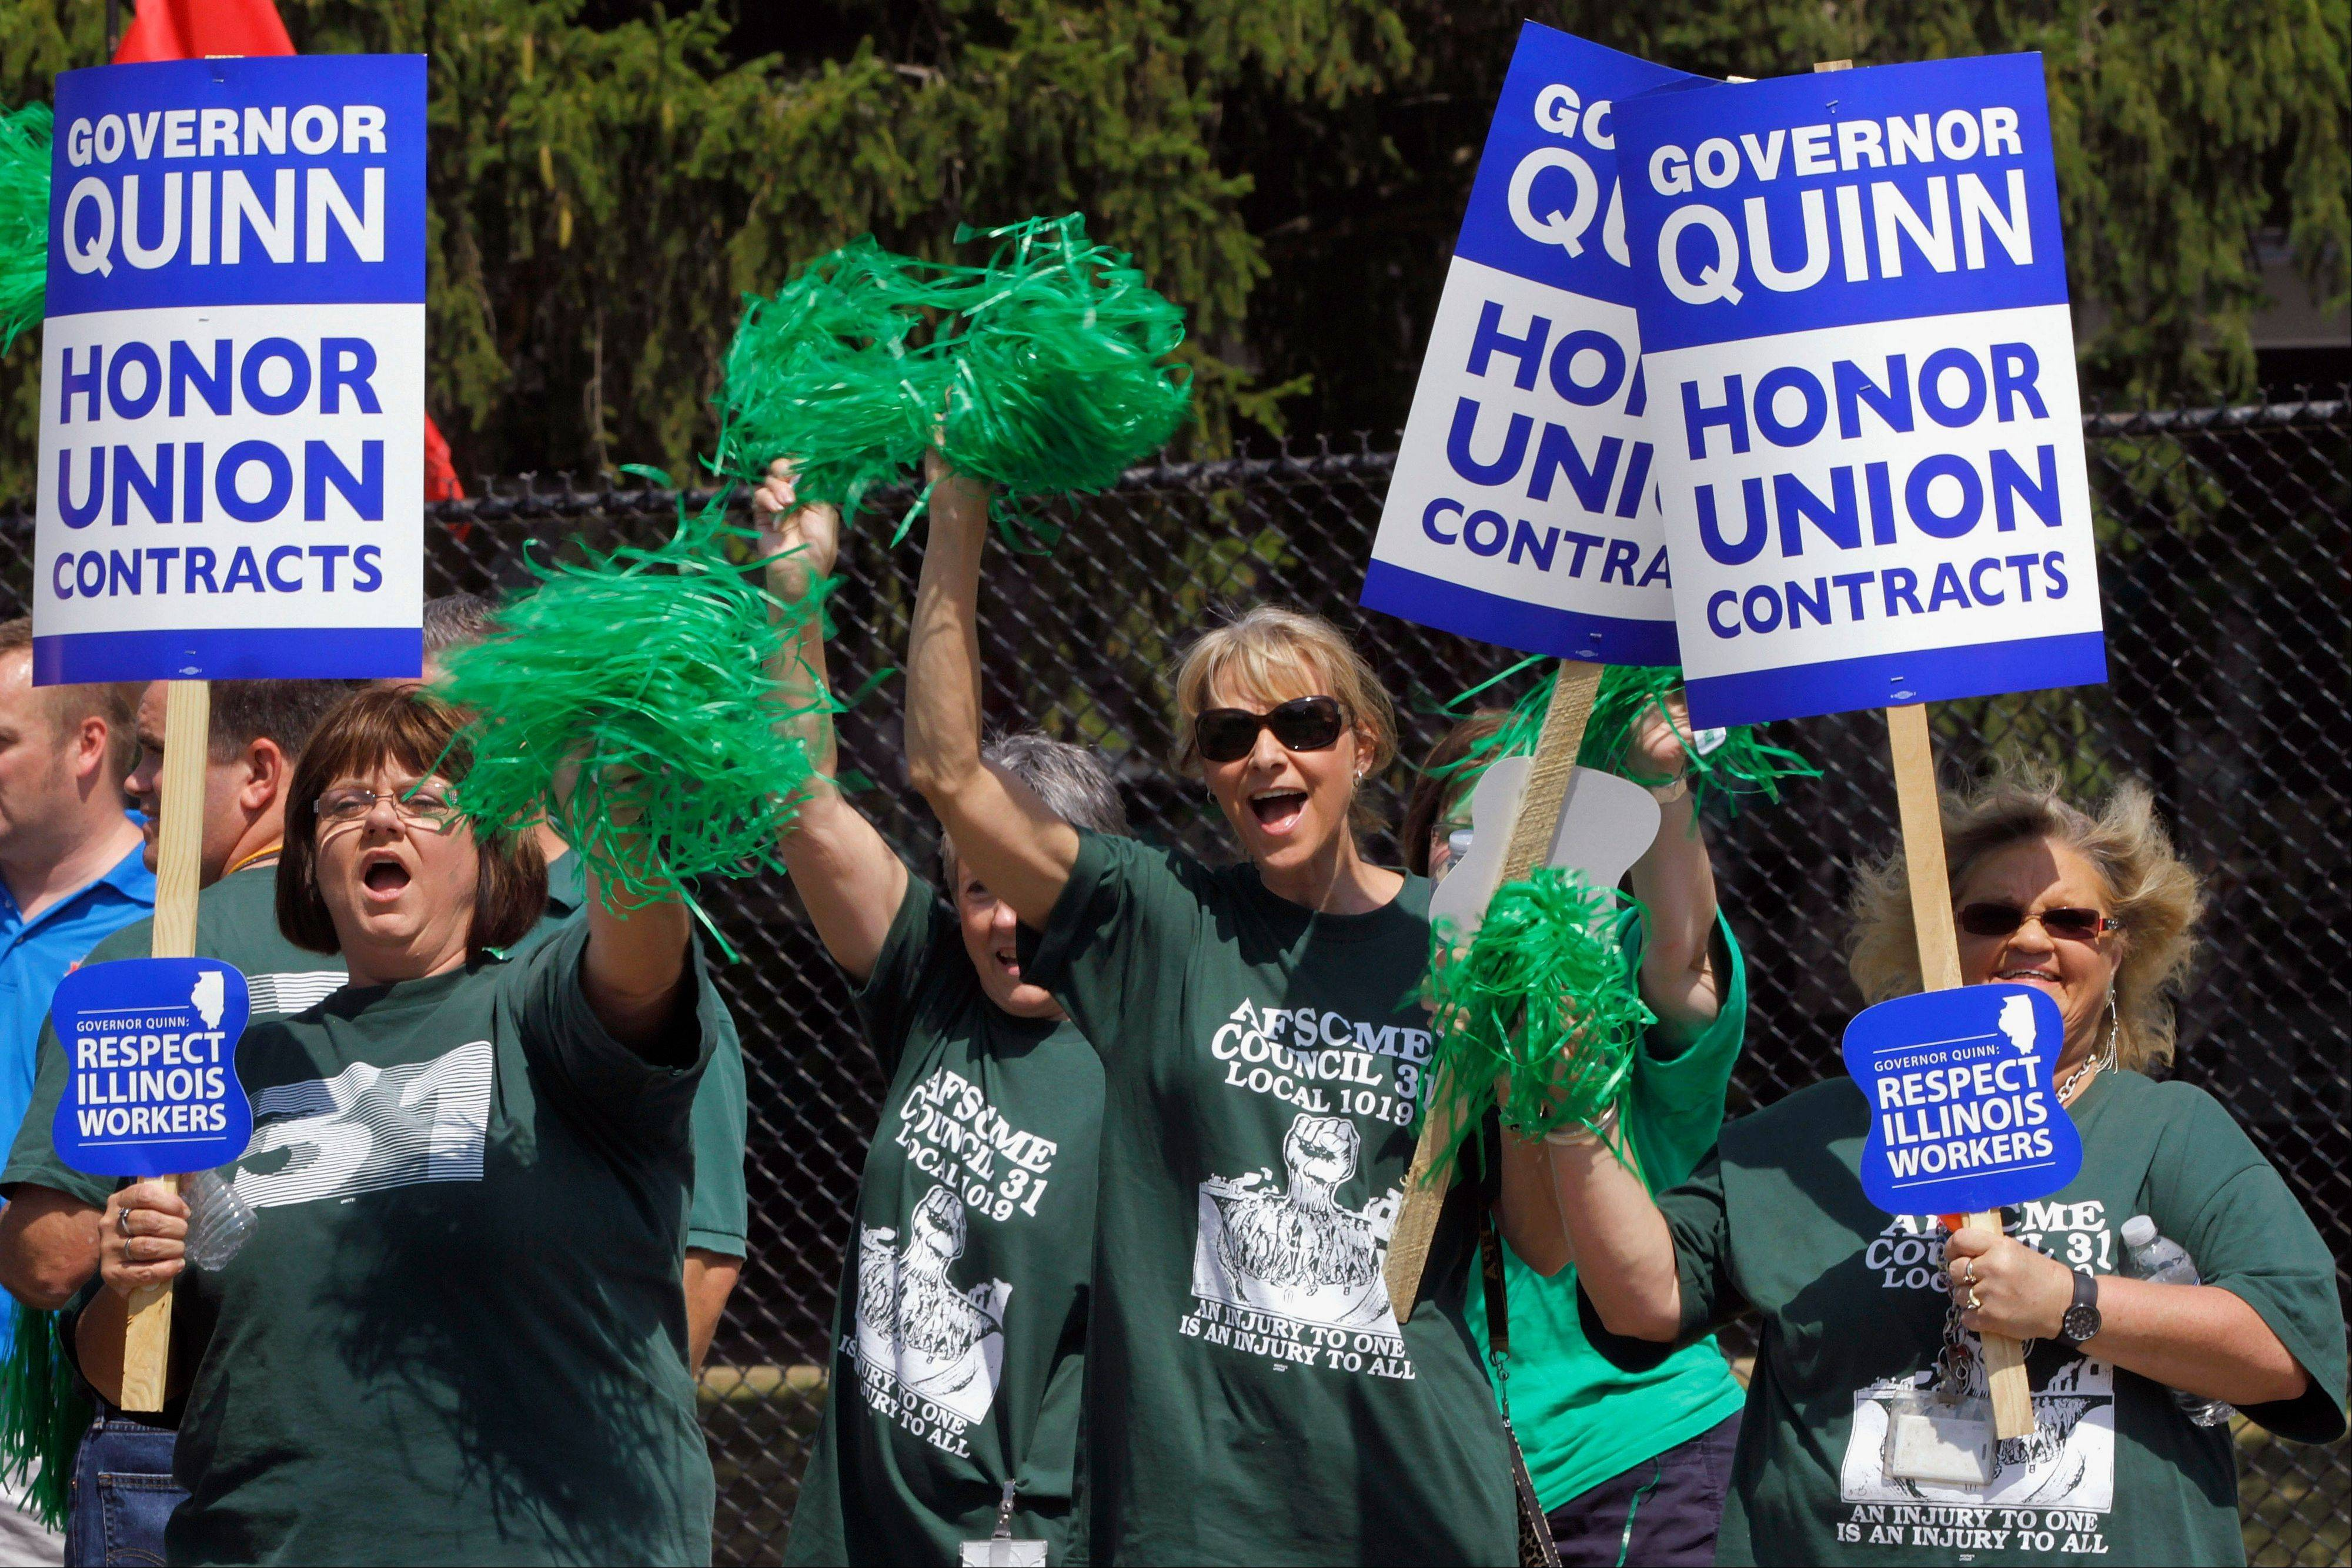 Union members, supporters and labor leaders protest against Illinois Gov. Pat Quinn at the state fair in Springfield. On Thursday, Quinn�s office confirmed that the largest state employee union in Illinois and his administration have reached a tentative contract agreement. Negotiations between the American Federation of State, County and Municipal Employees union and Quinn�s office have been contentious and union members had started preparing for a strike.